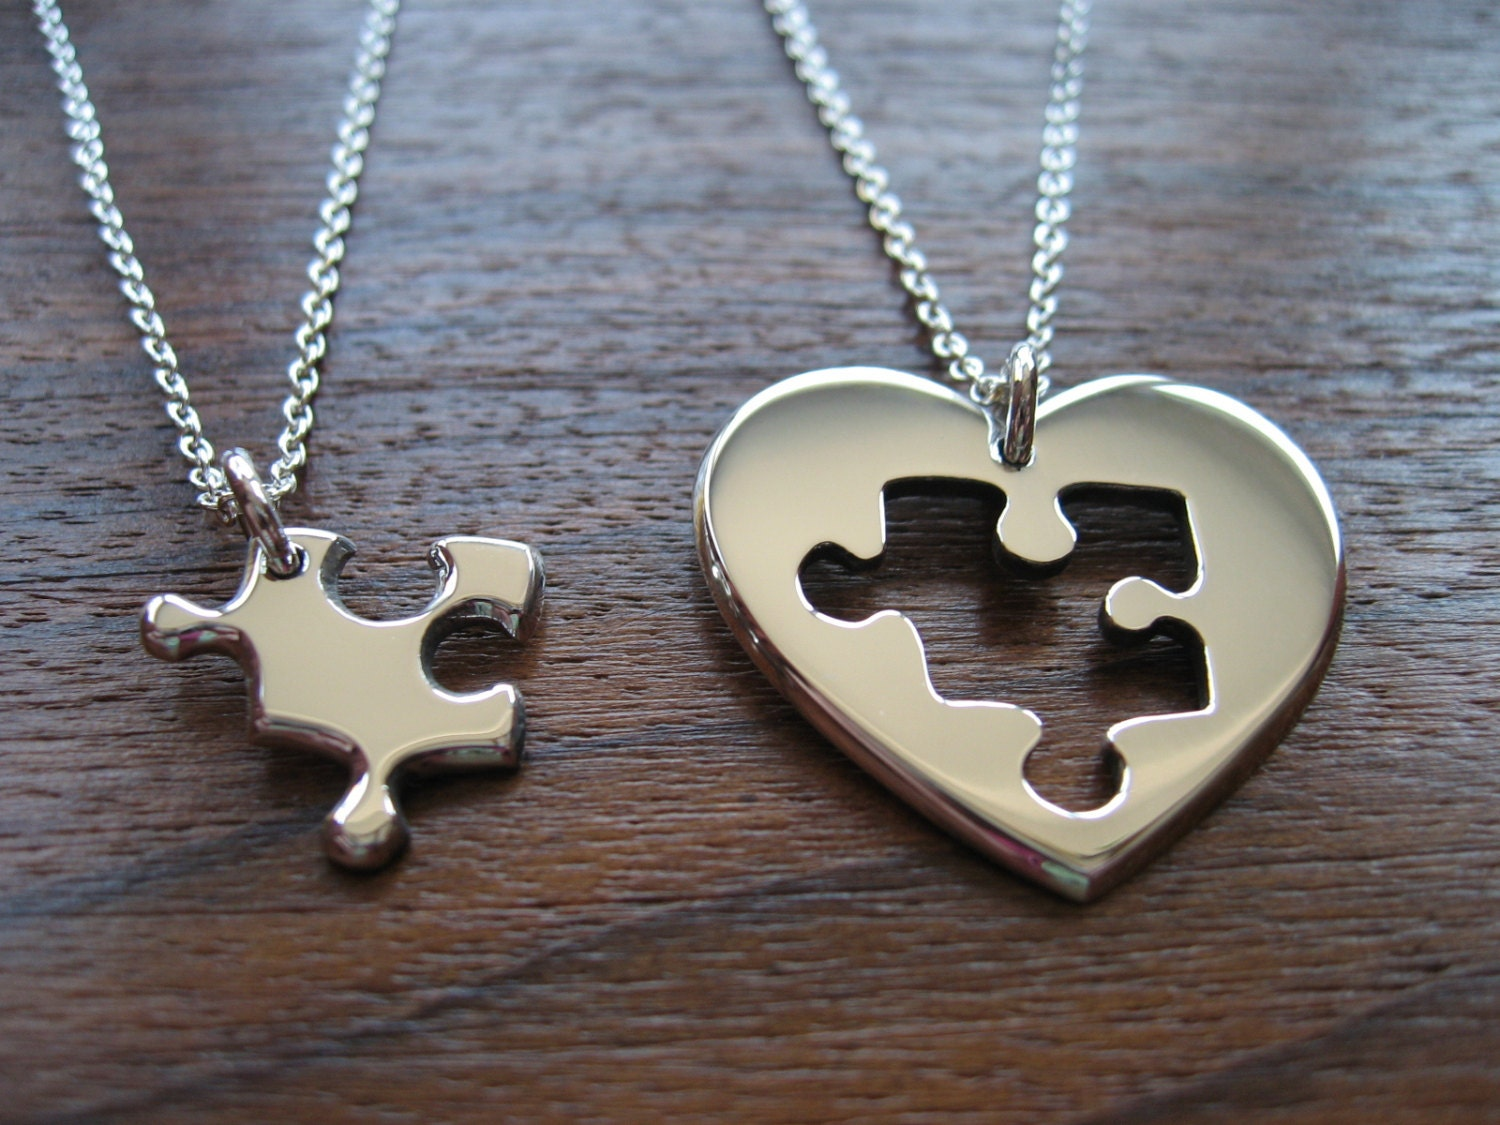 wedding products pick and piece couples date guitar engraved necklace puzzle necklaces